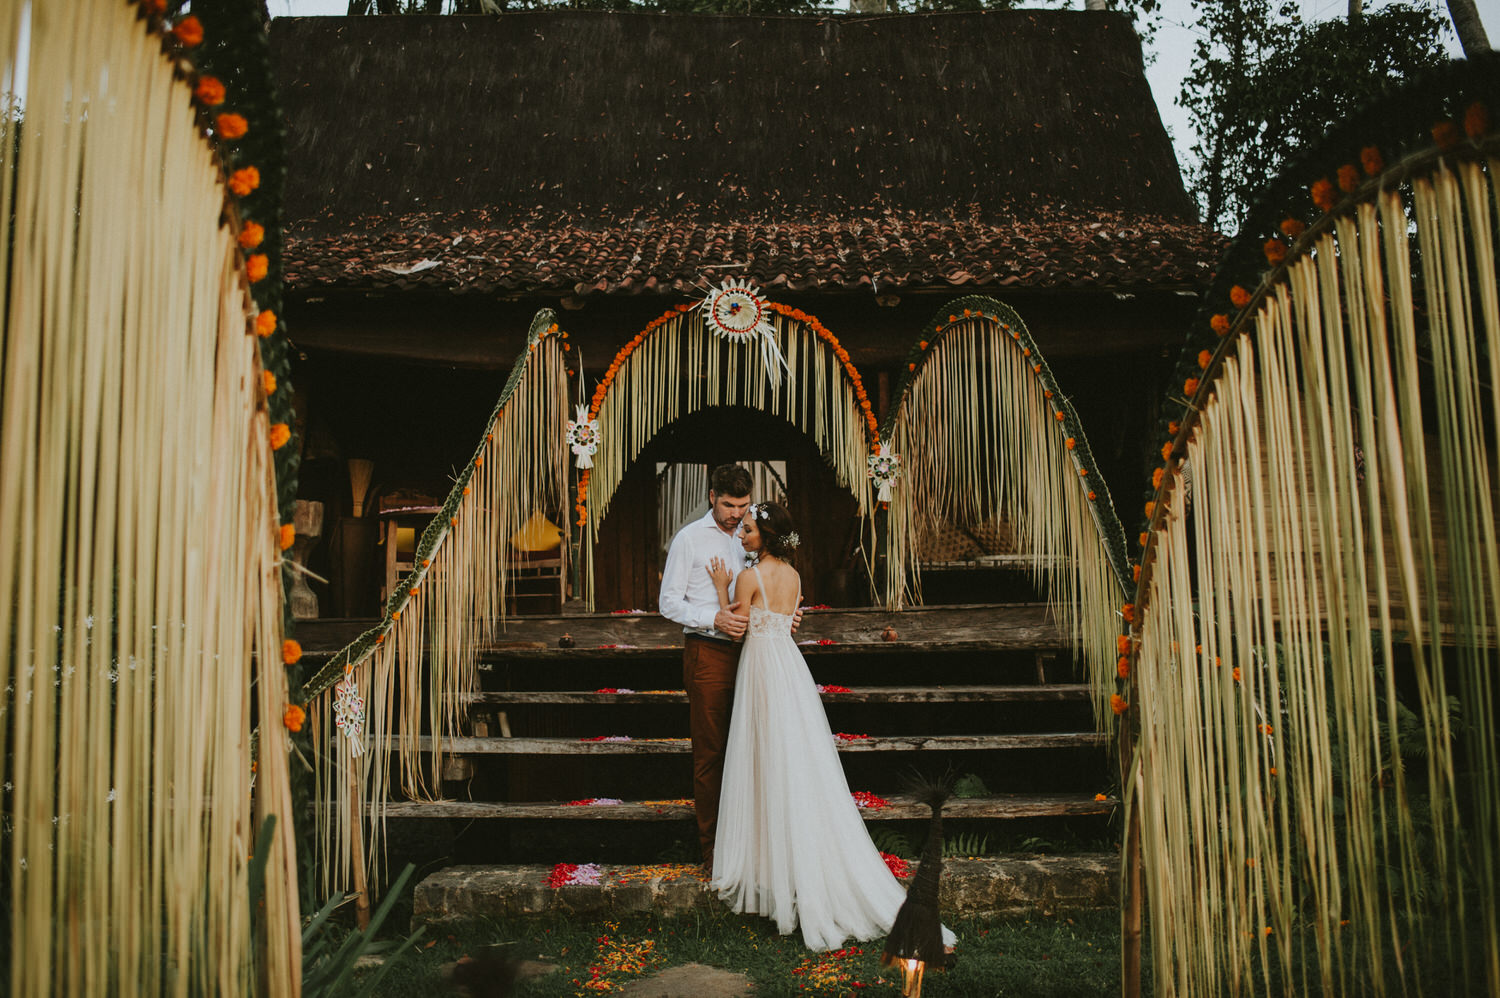 bali-wedding-ubud-wedding-wedding-destination-diktatphotography-kadek-artayasa-elaine-and-glenn-106